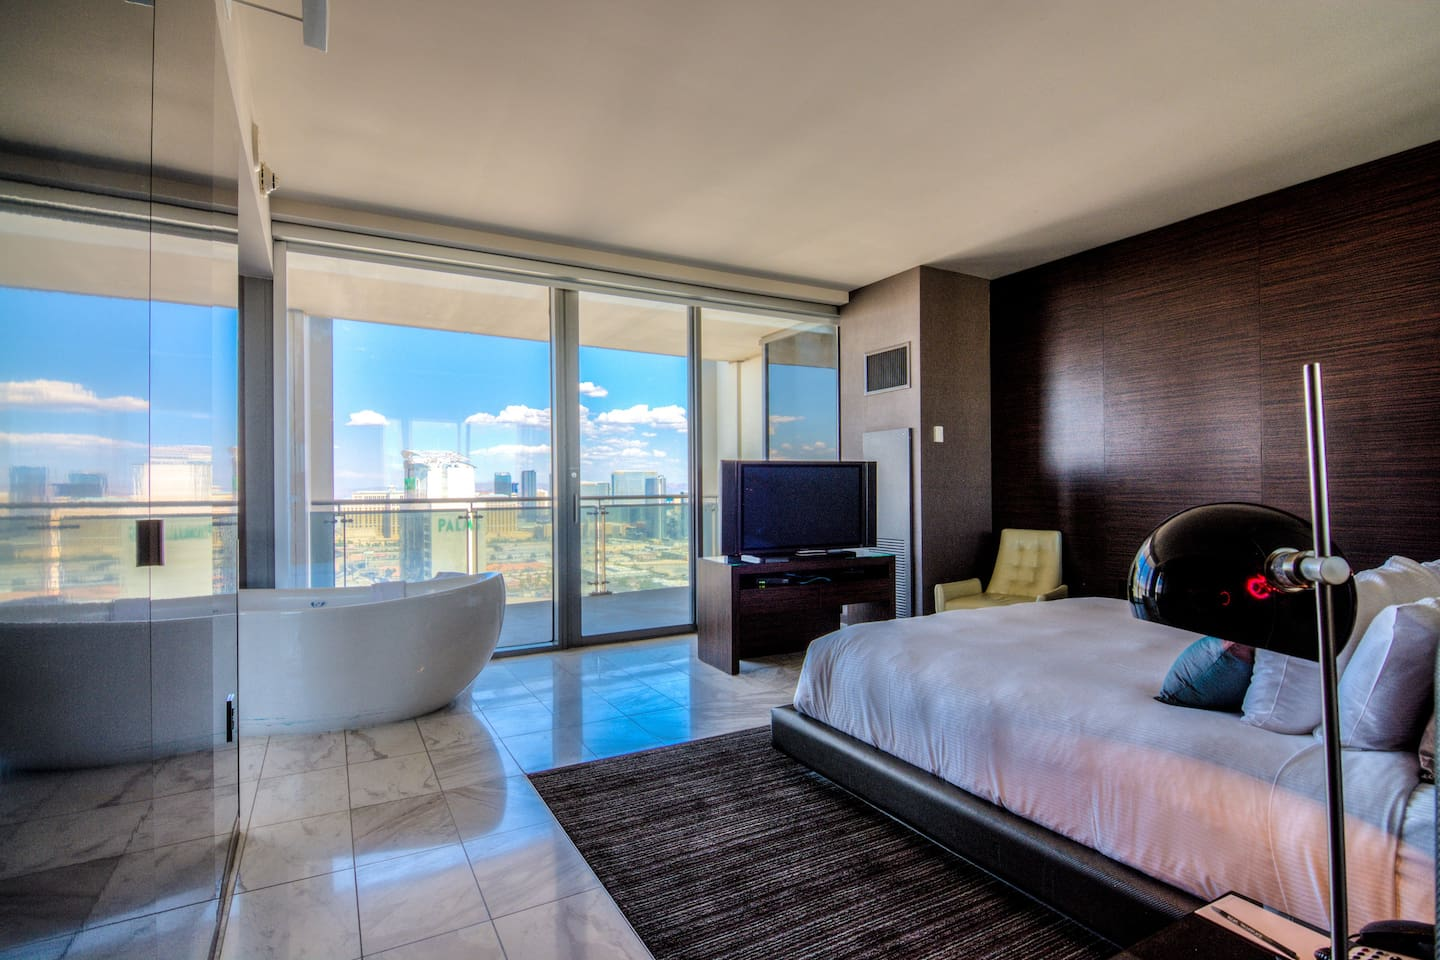 One Bedroom Suite Palms Place Ia36 1br Corner Suite Strip View Balcony Kitchen Apartments For